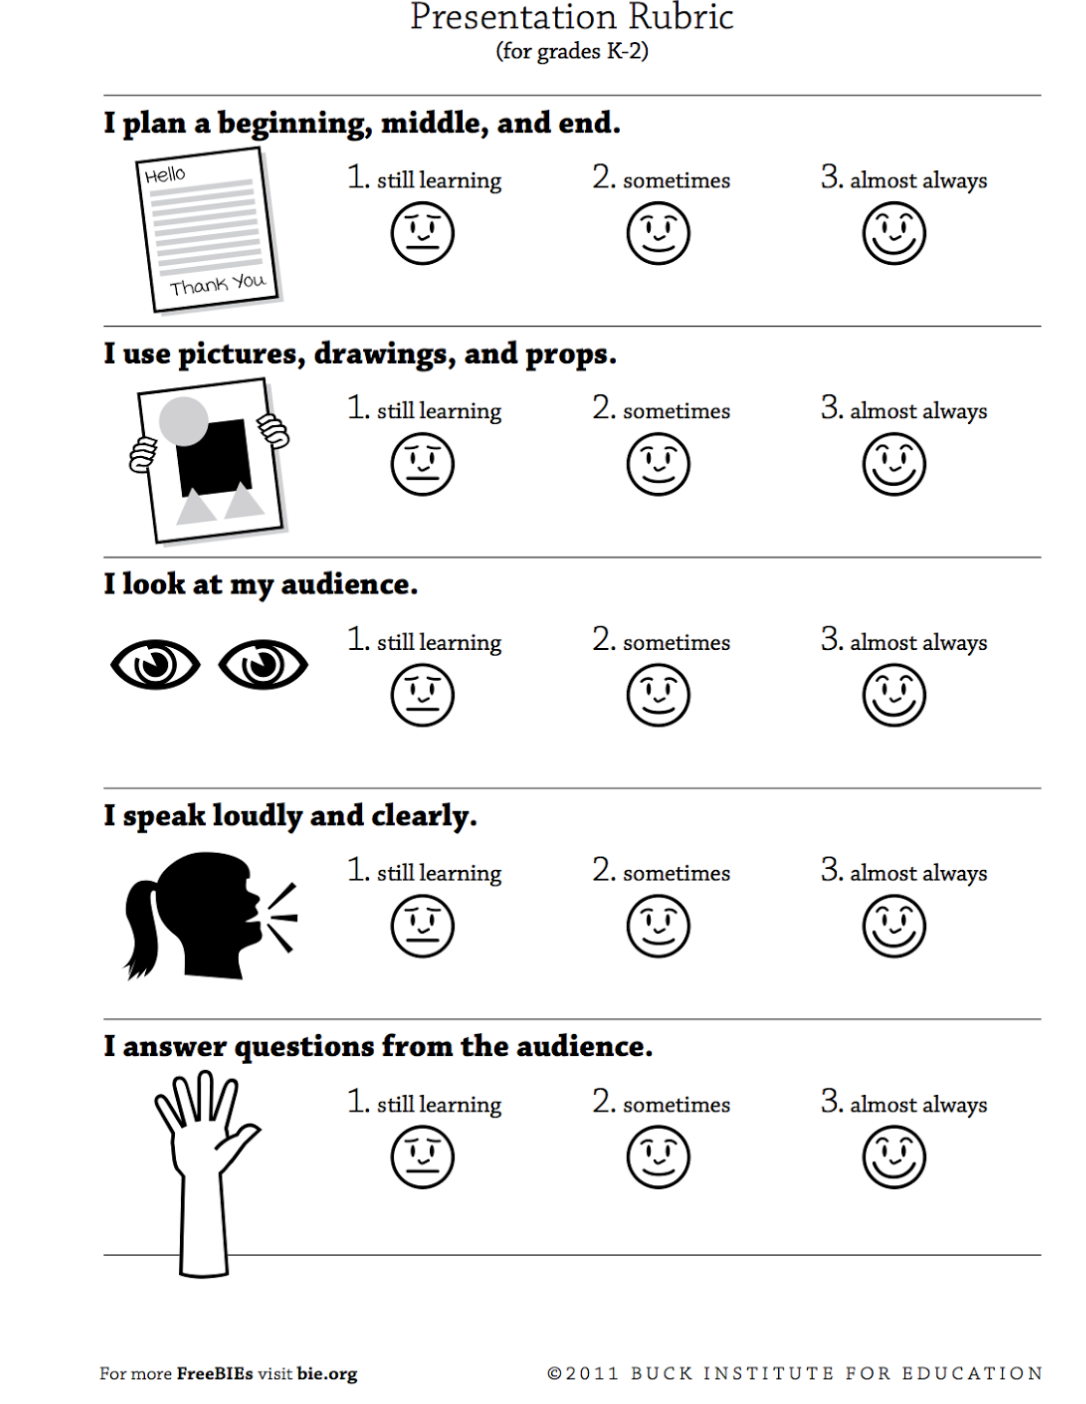 4 Great Rubrics To Develop Students Presentations And Speaking Skills Presentation Rubric Student Presentation Rubrics